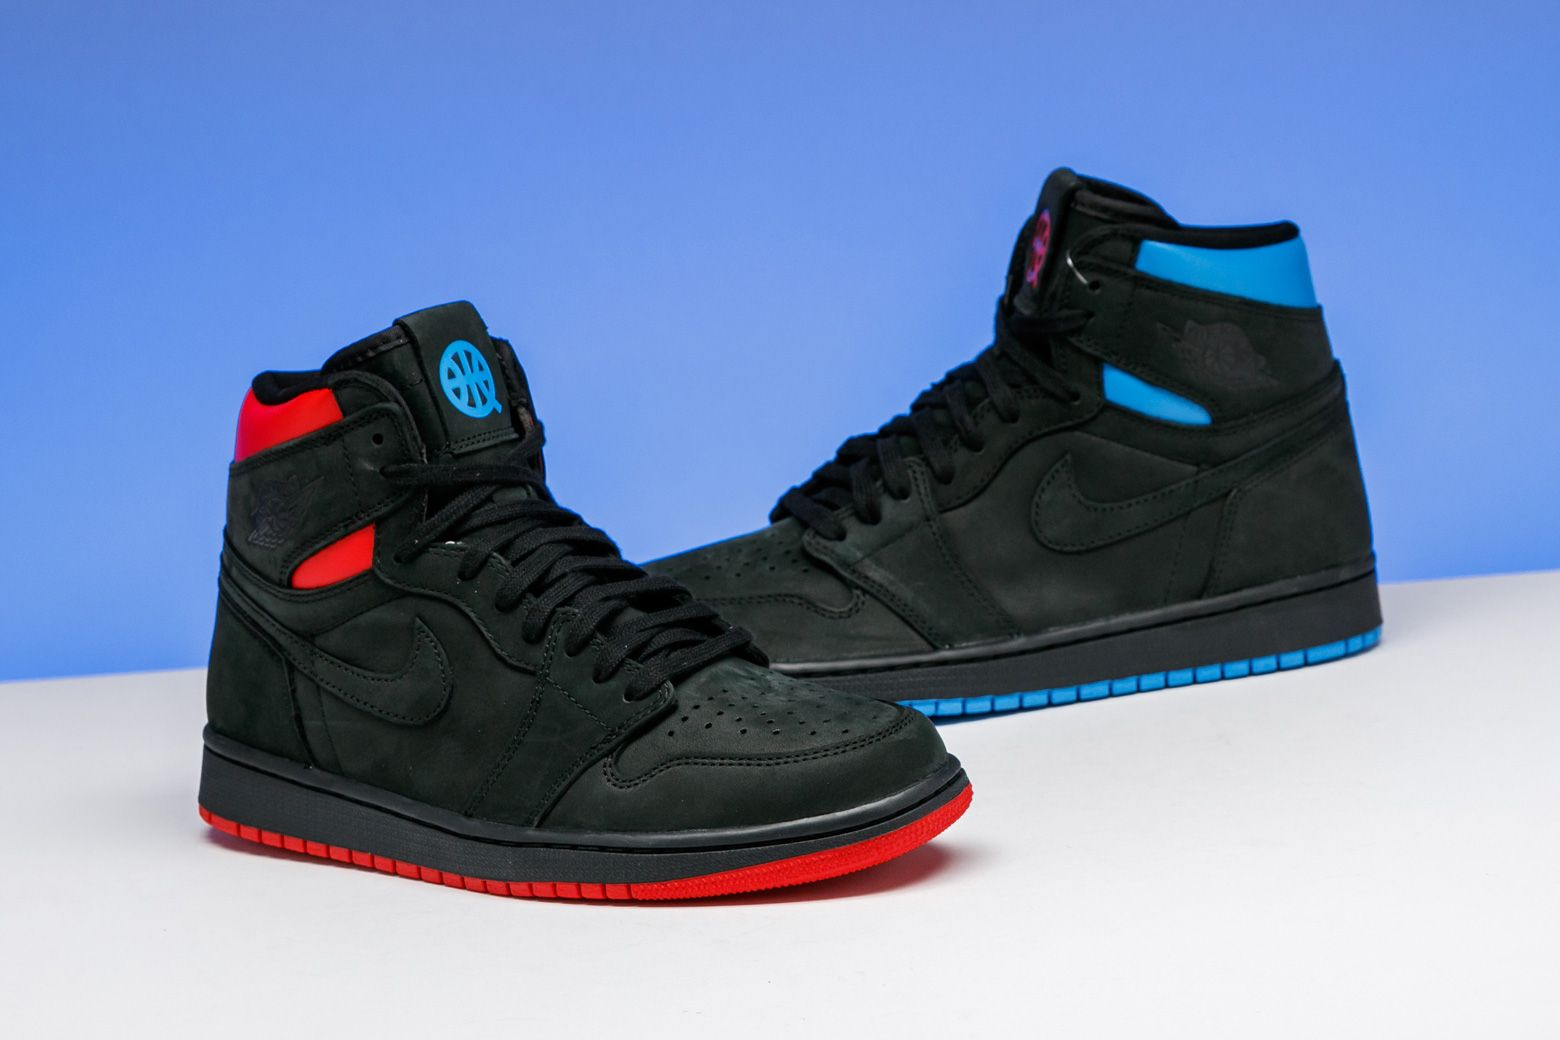 31549d20d9dcd7 The French national flag inspired this celebratory Quai 54 edition Air  Jordan 1 High Retro.